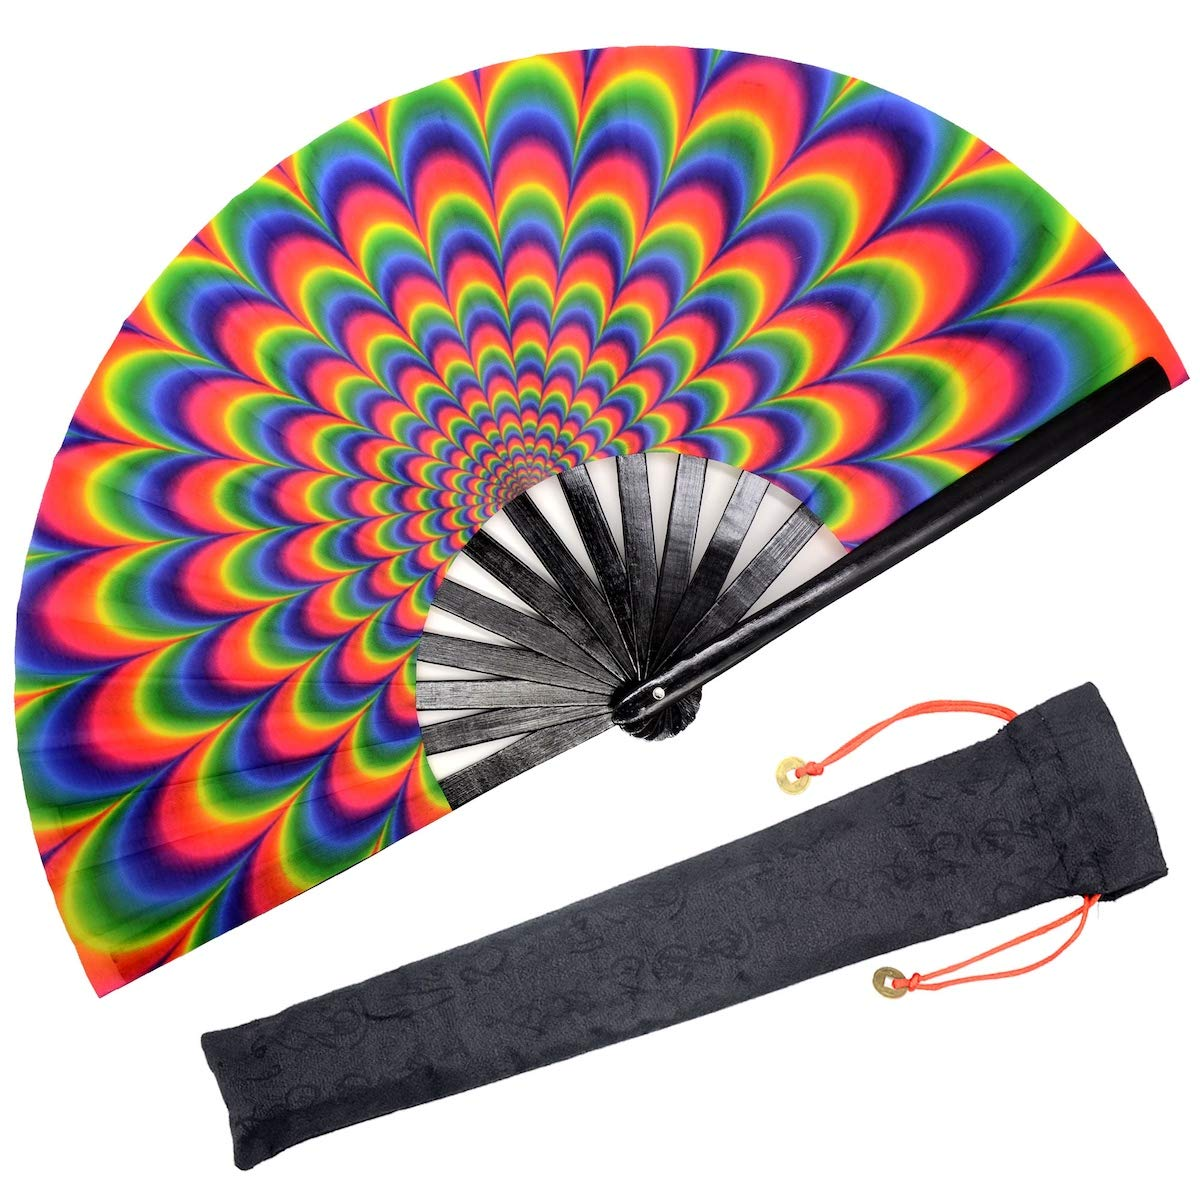 OMyTea Bamboo Large Rave Folding Hand Fan for Men/Women - Chinese Japanese Handheld Fan with Fabric Case - for Electronic Dance Music Festival Party, Performance, Decorations, Gift (Trippy)